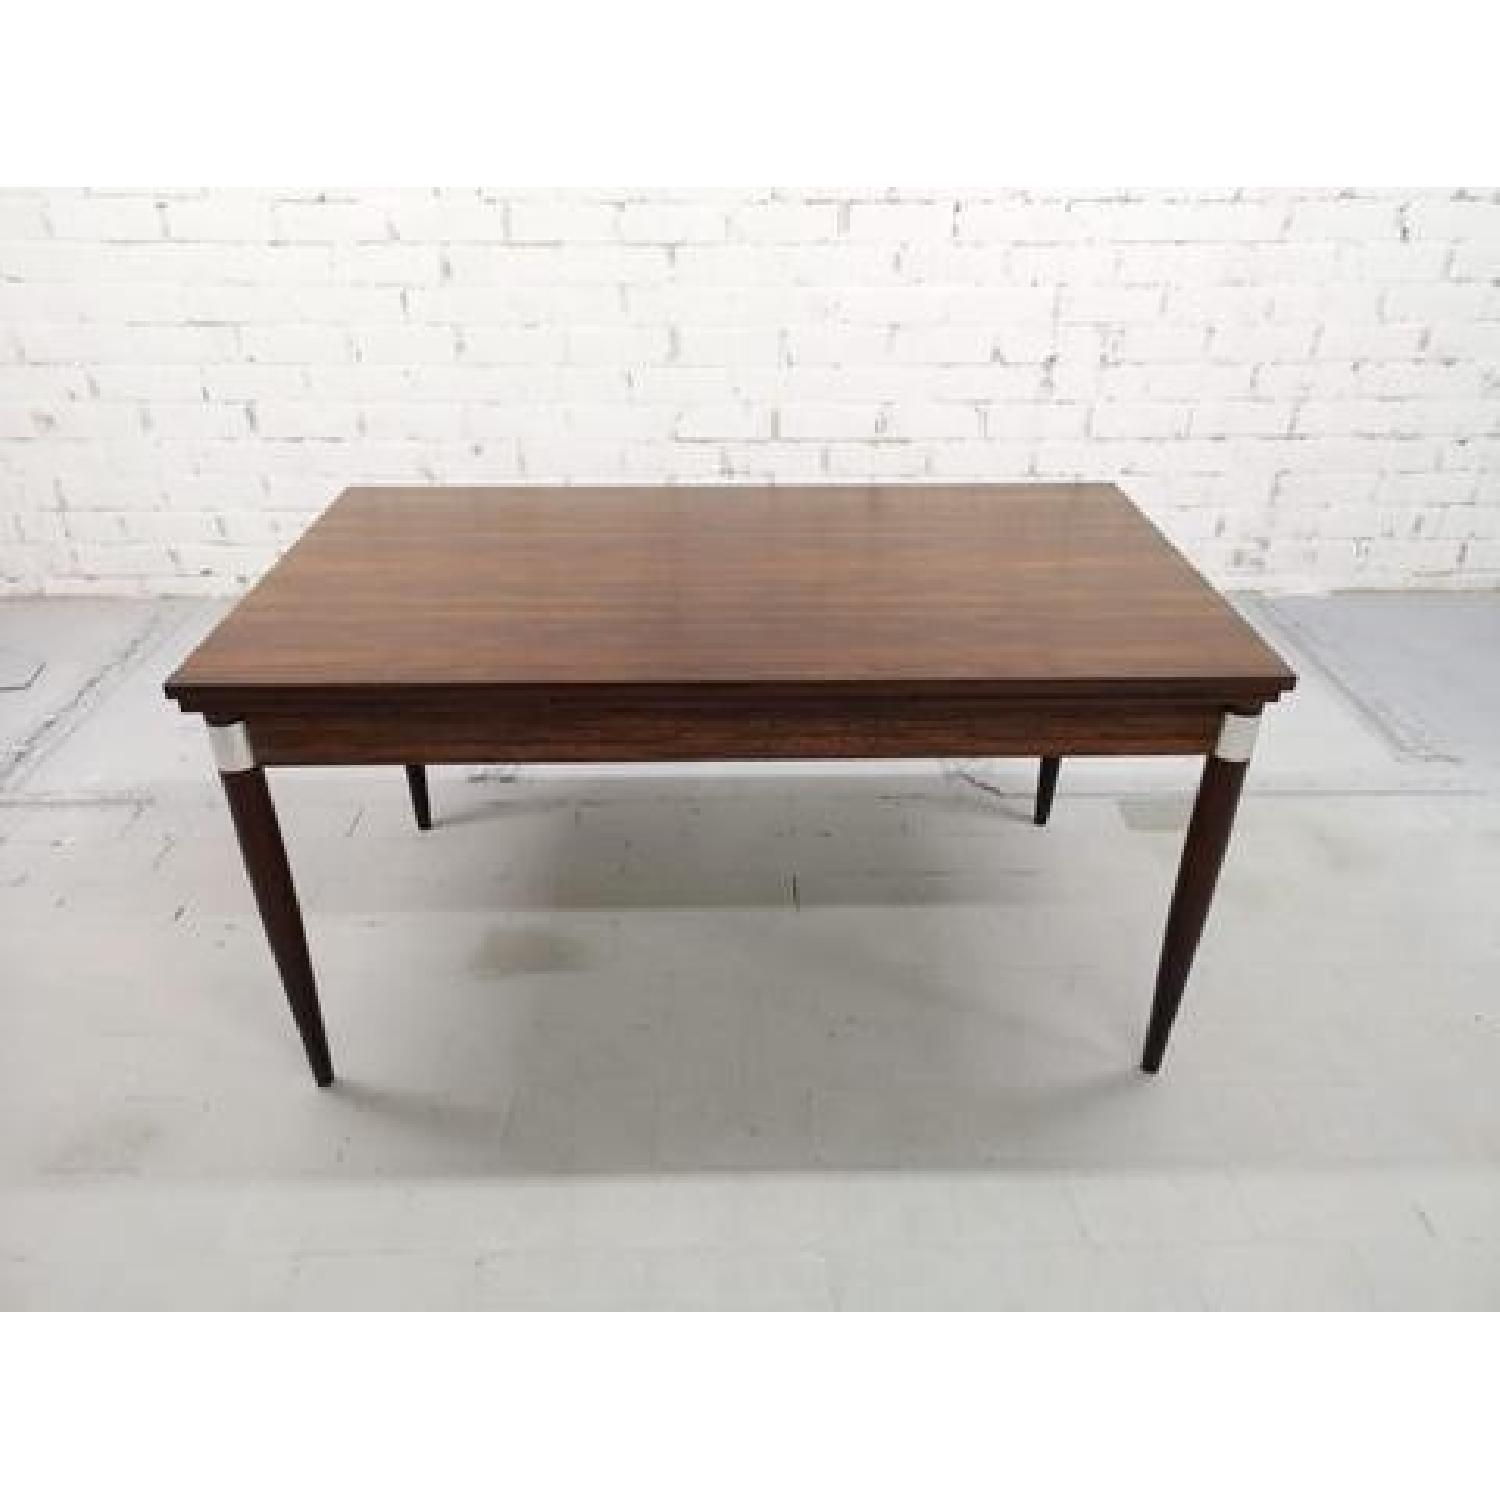 Mid-Century Modern Design Extendable Draw Leaf Dining Table - image-12